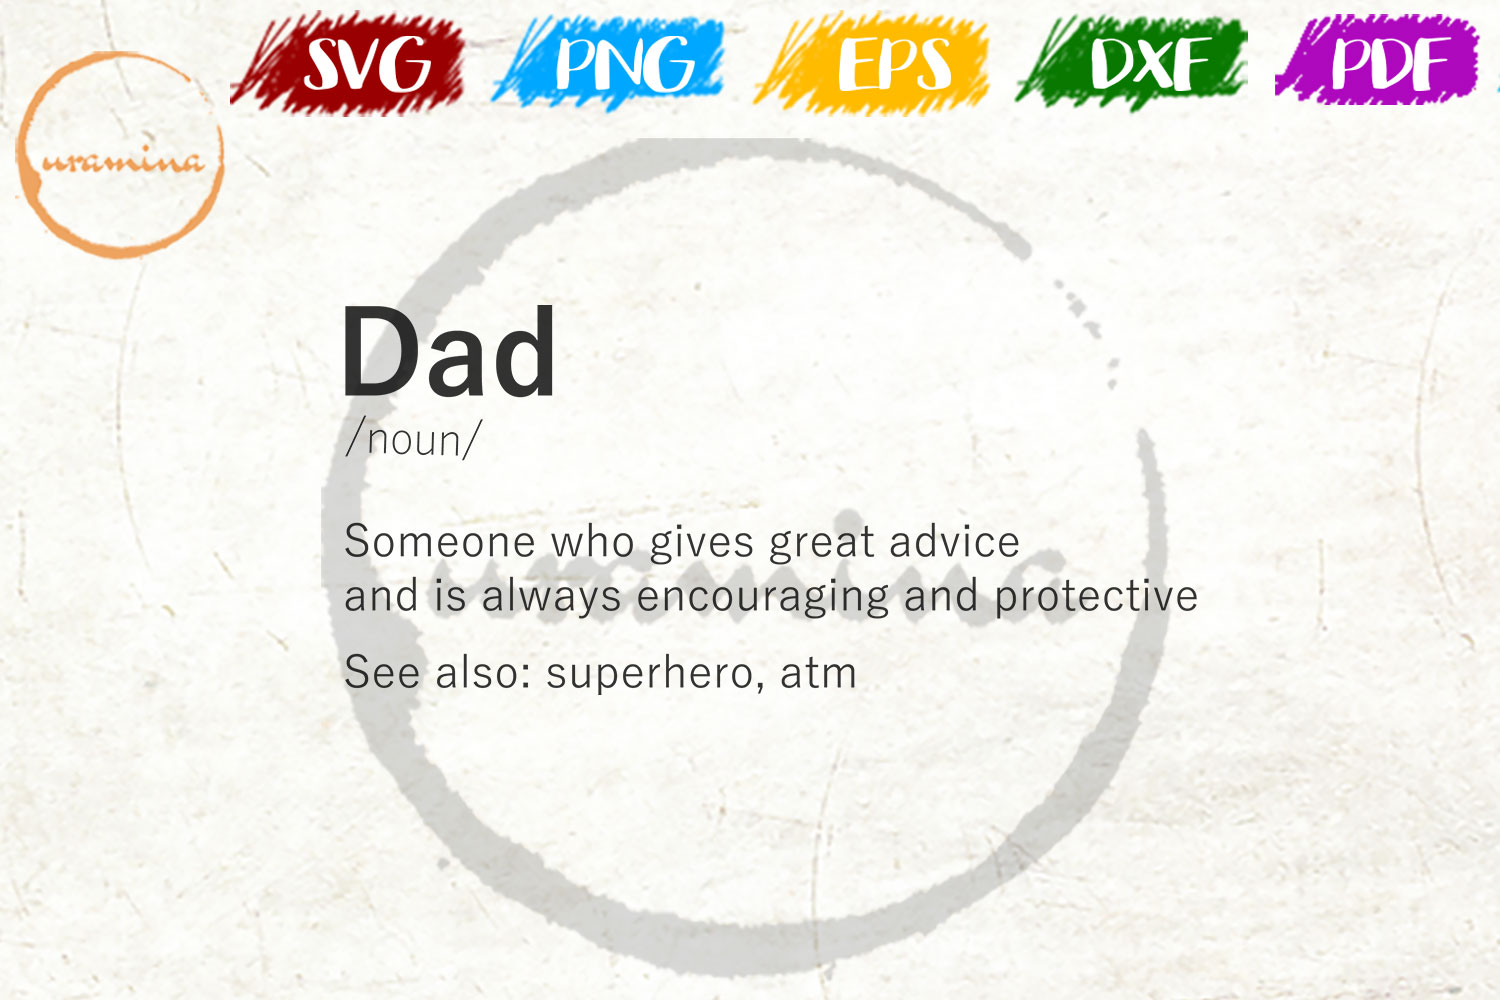 Download Free Dad Someone Who Gives Great Advice Graphic By Uramina Creative Fabrica for Cricut Explore, Silhouette and other cutting machines.